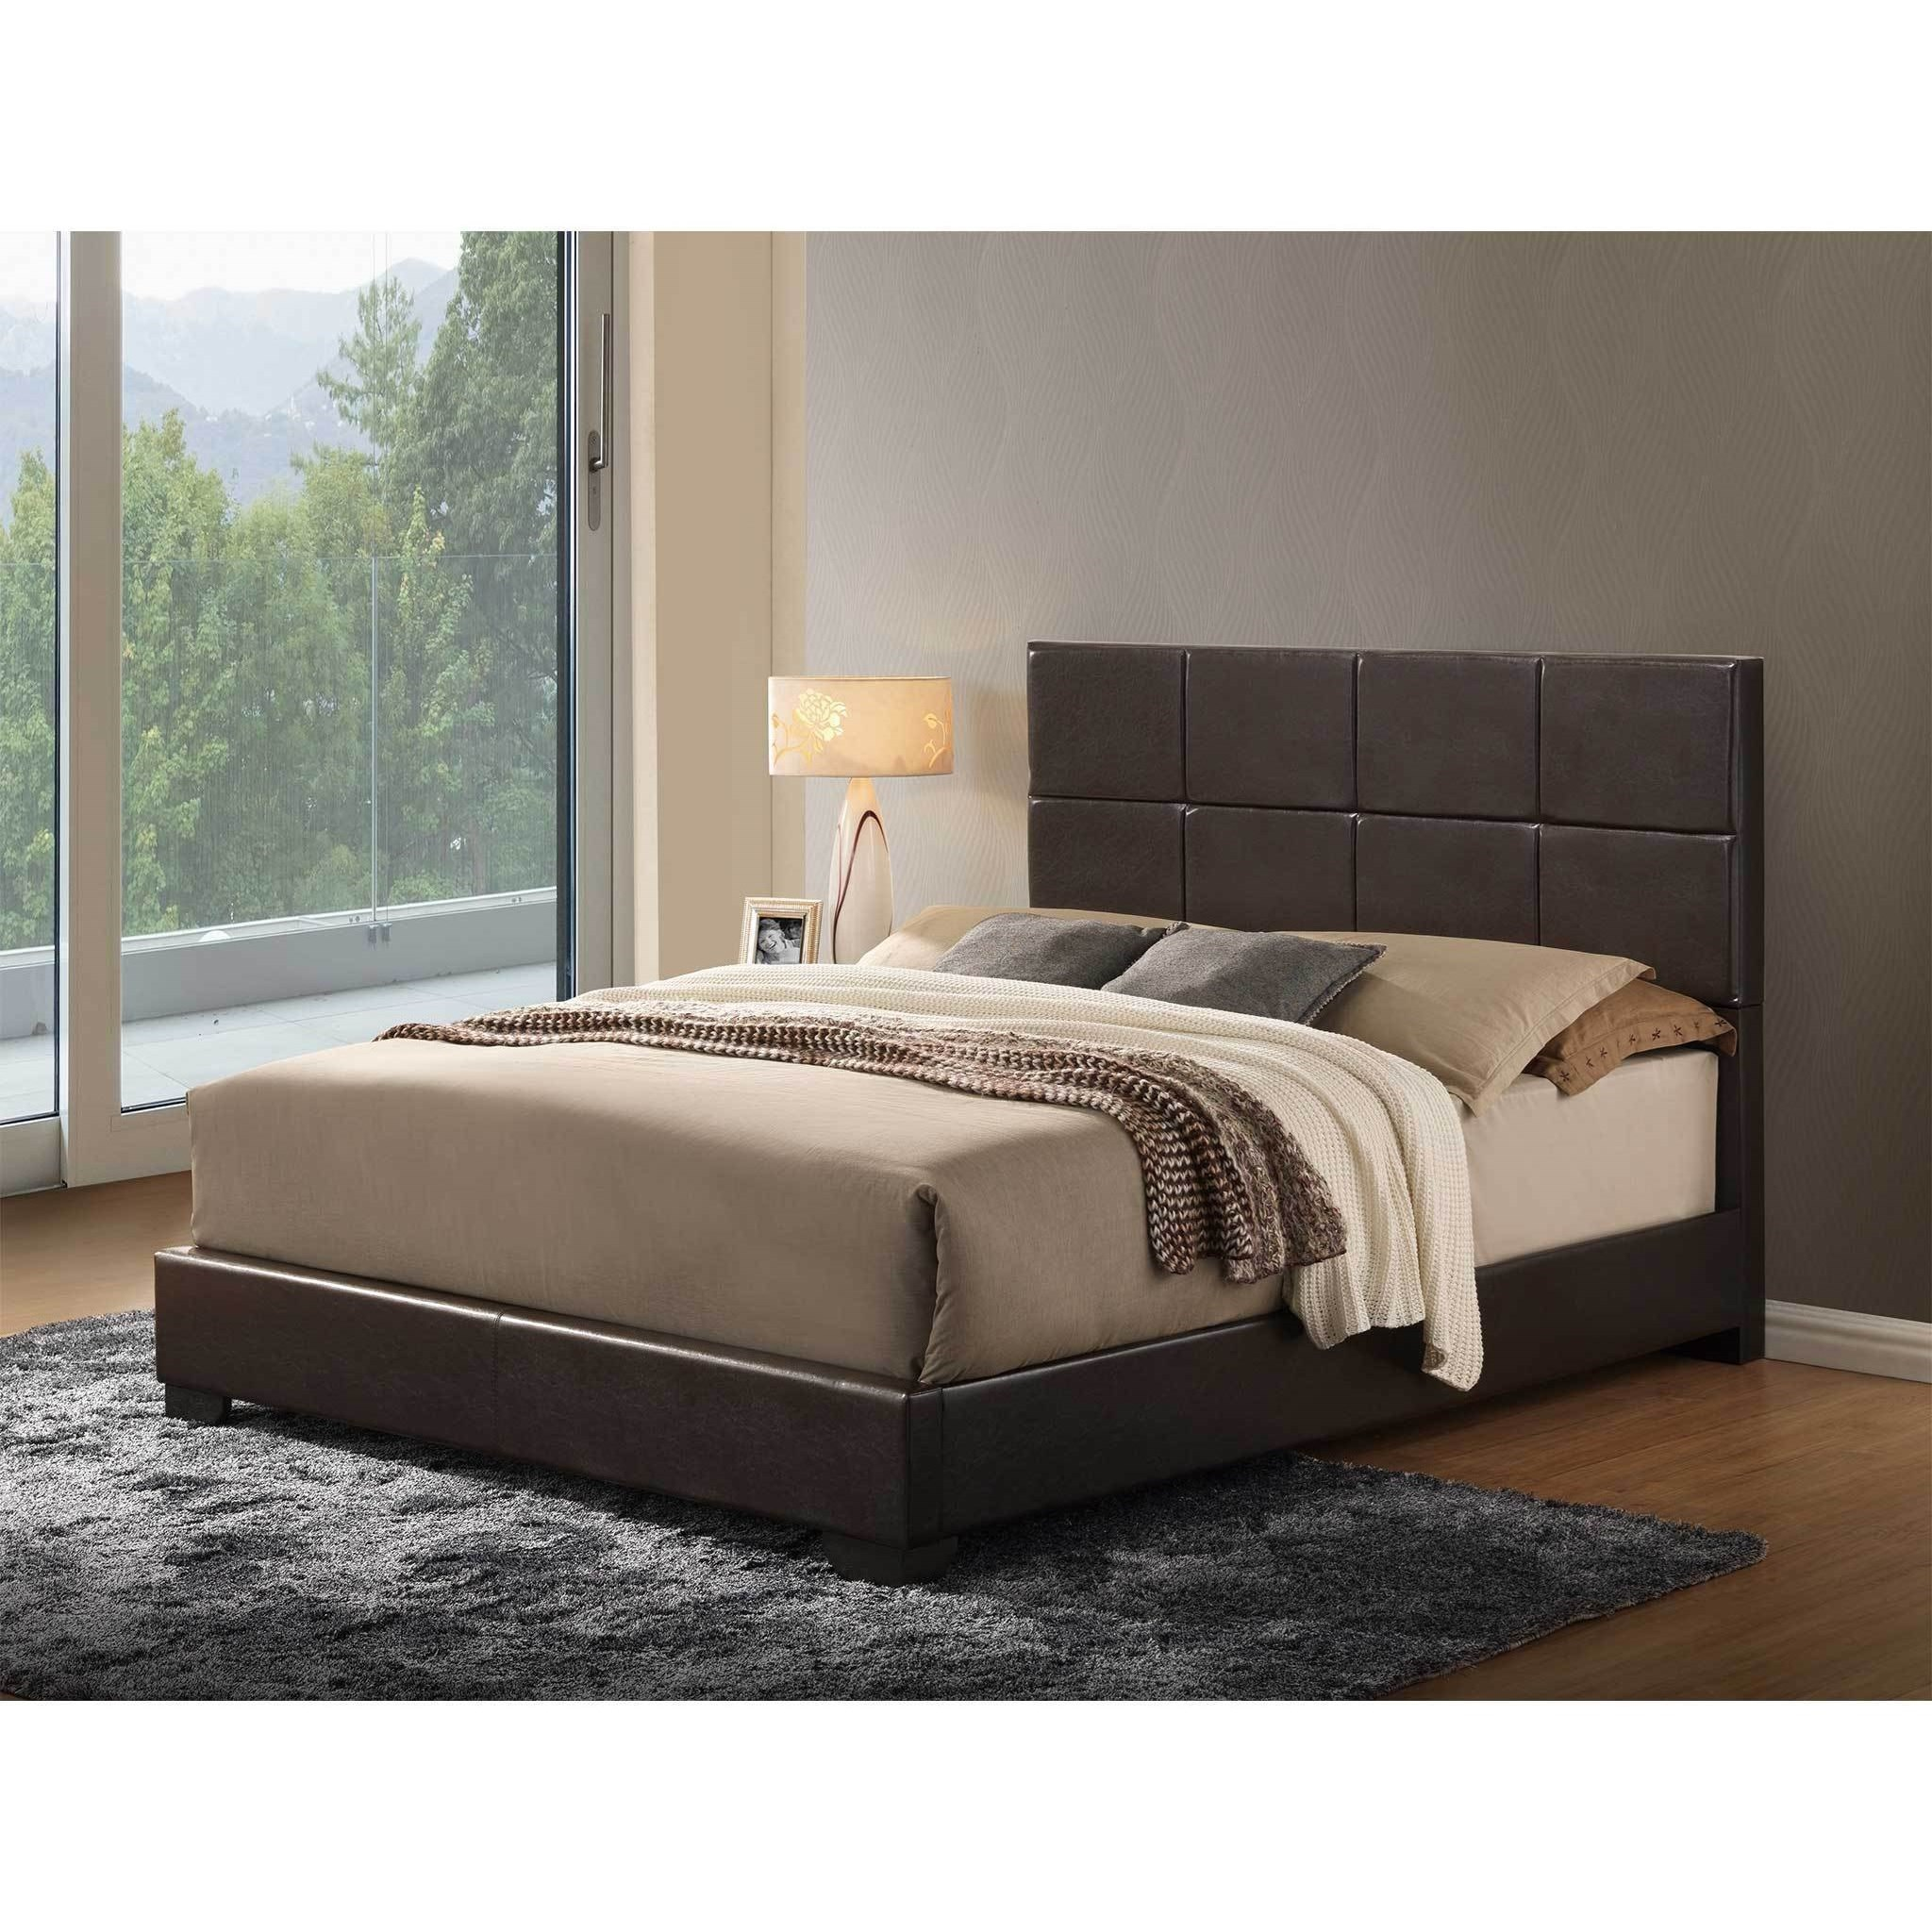 8566 Upholstered Twin Bed by Global Furniture at Dream Home Interiors